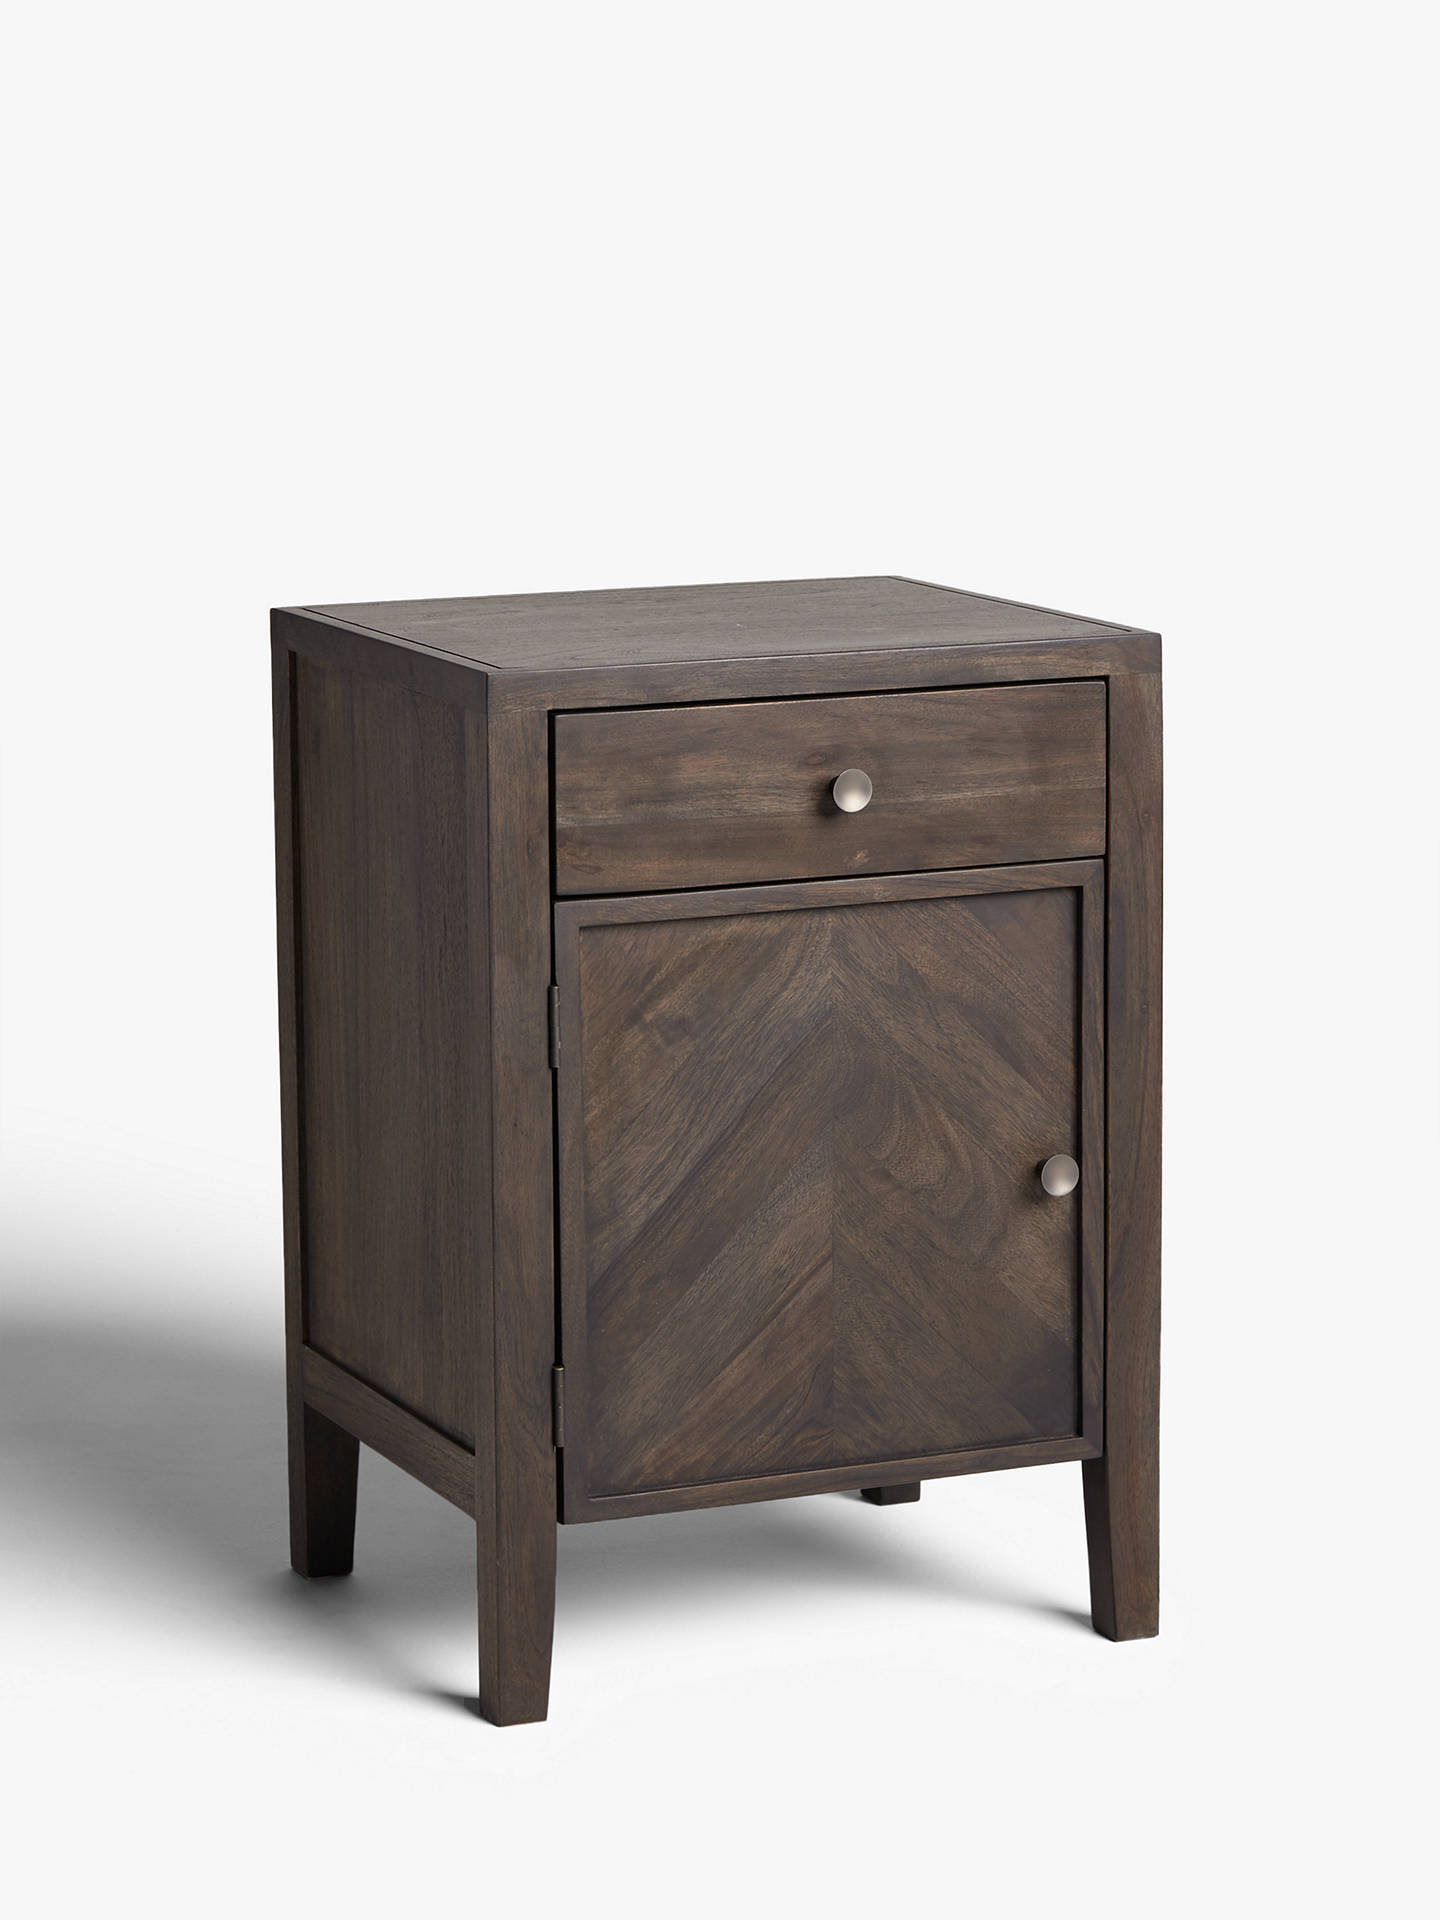 Buy John Lewis & Partners Padma 1 Door Parquet Bedside Table, Grey/Nickel Online at johnlewis.com